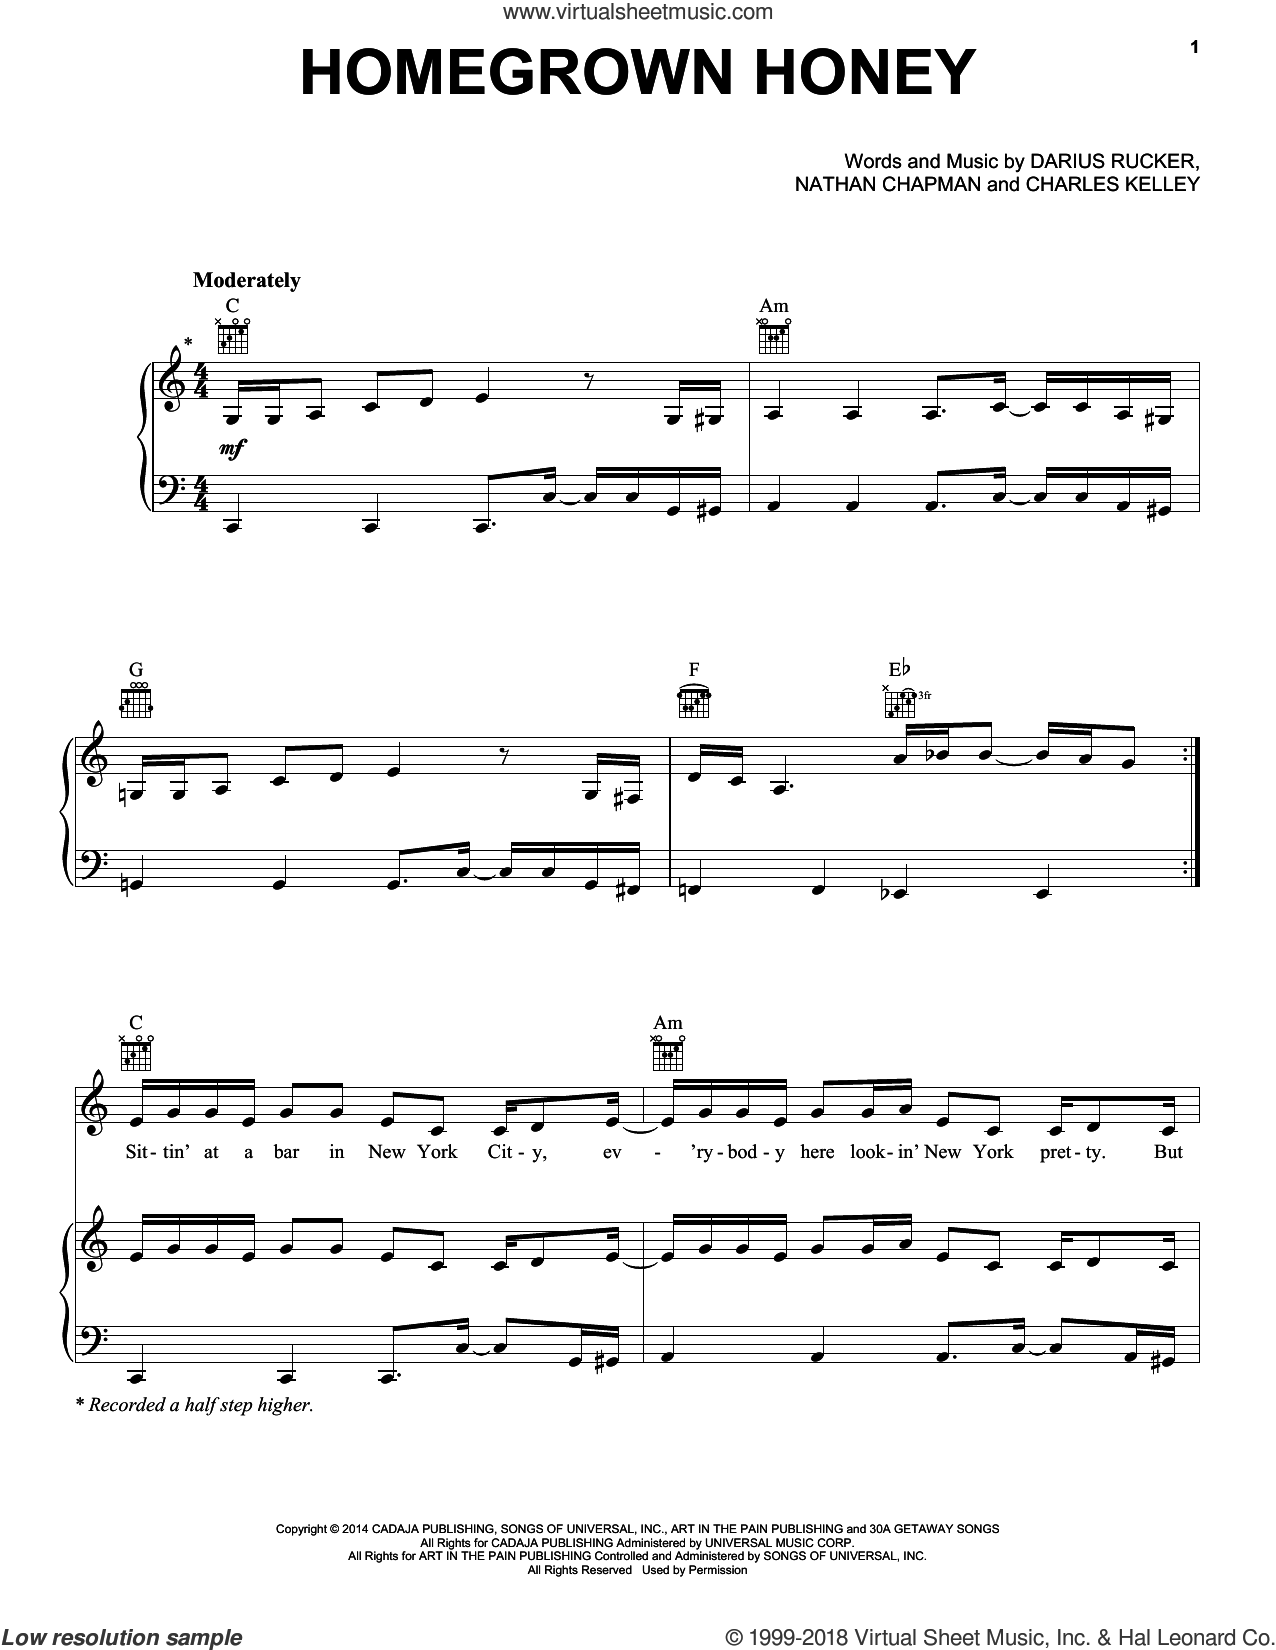 Homegrown Honey sheet music for voice, piano or guitar by Darius Rucker, Charles Kelley and Nathan Chapman, intermediate skill level